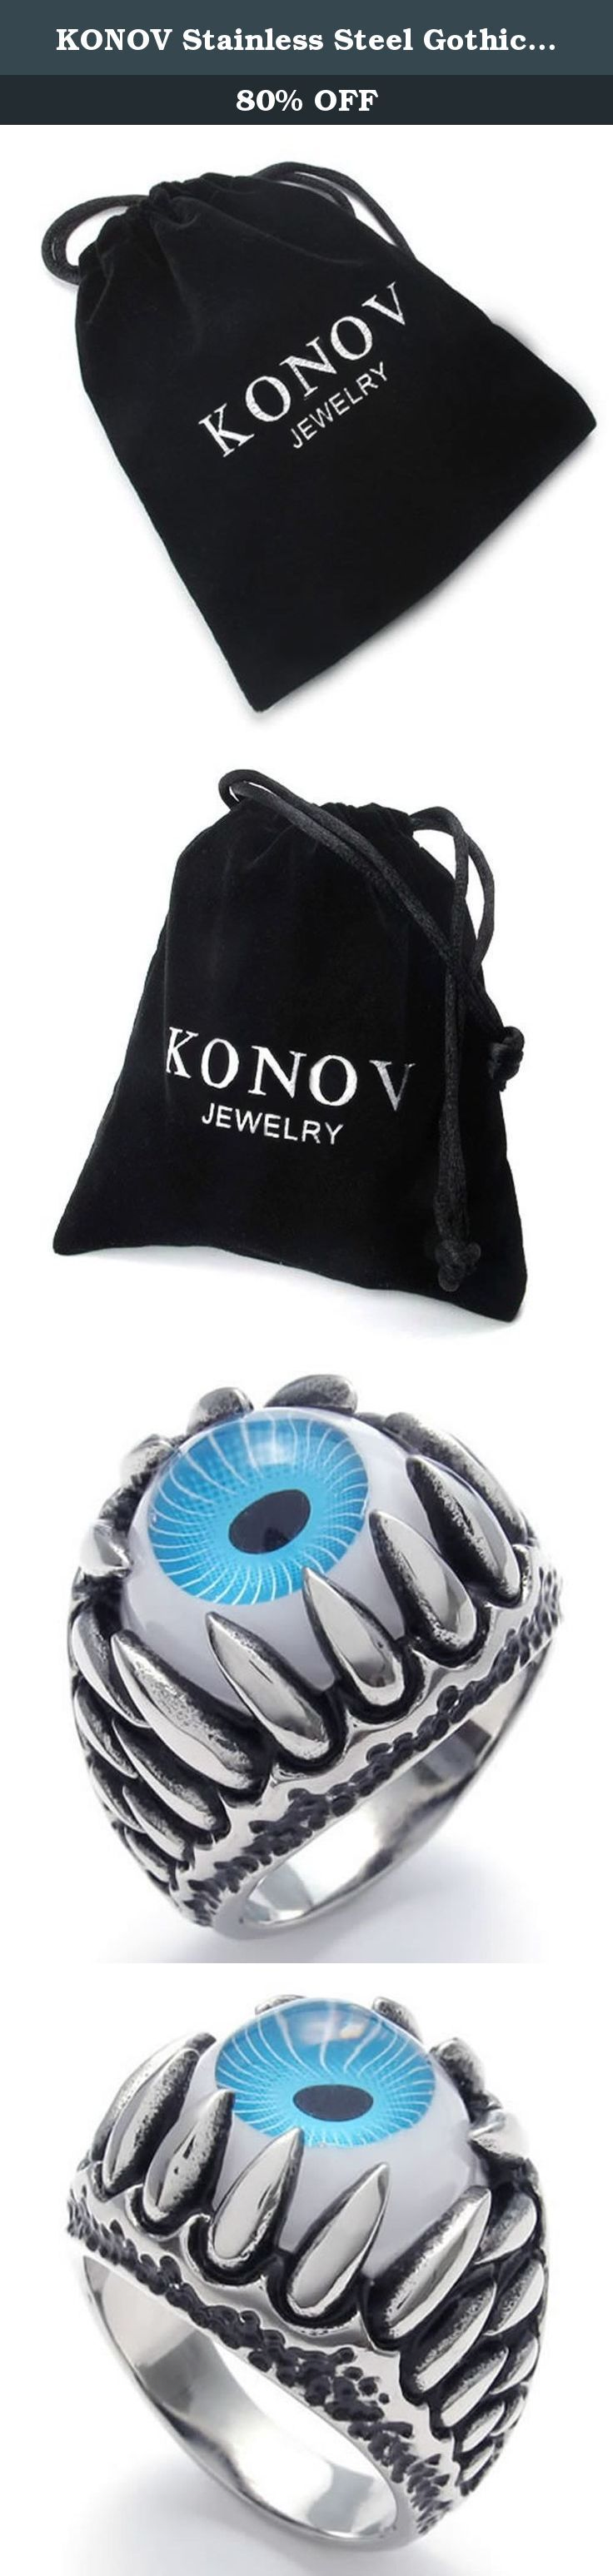 KONOV Stainless Steel Gothic Dragon Claw Devil Eye Biker Men's Ring, Blue Silver - Size 13. Why choose Stainless Steel Jewelry? Stainless Steel jewelry does not tarnish and oxidize, which can last longer than other jewelries. It is able to endure a lot of wear and tear. And it is amazingly hypoallergenic. Such advantages make it a more popular accessory. Why need Stainless Steel Jewelry? High quality stainless steel has high resistance to rust, corrosion and tarnishing, which requires...